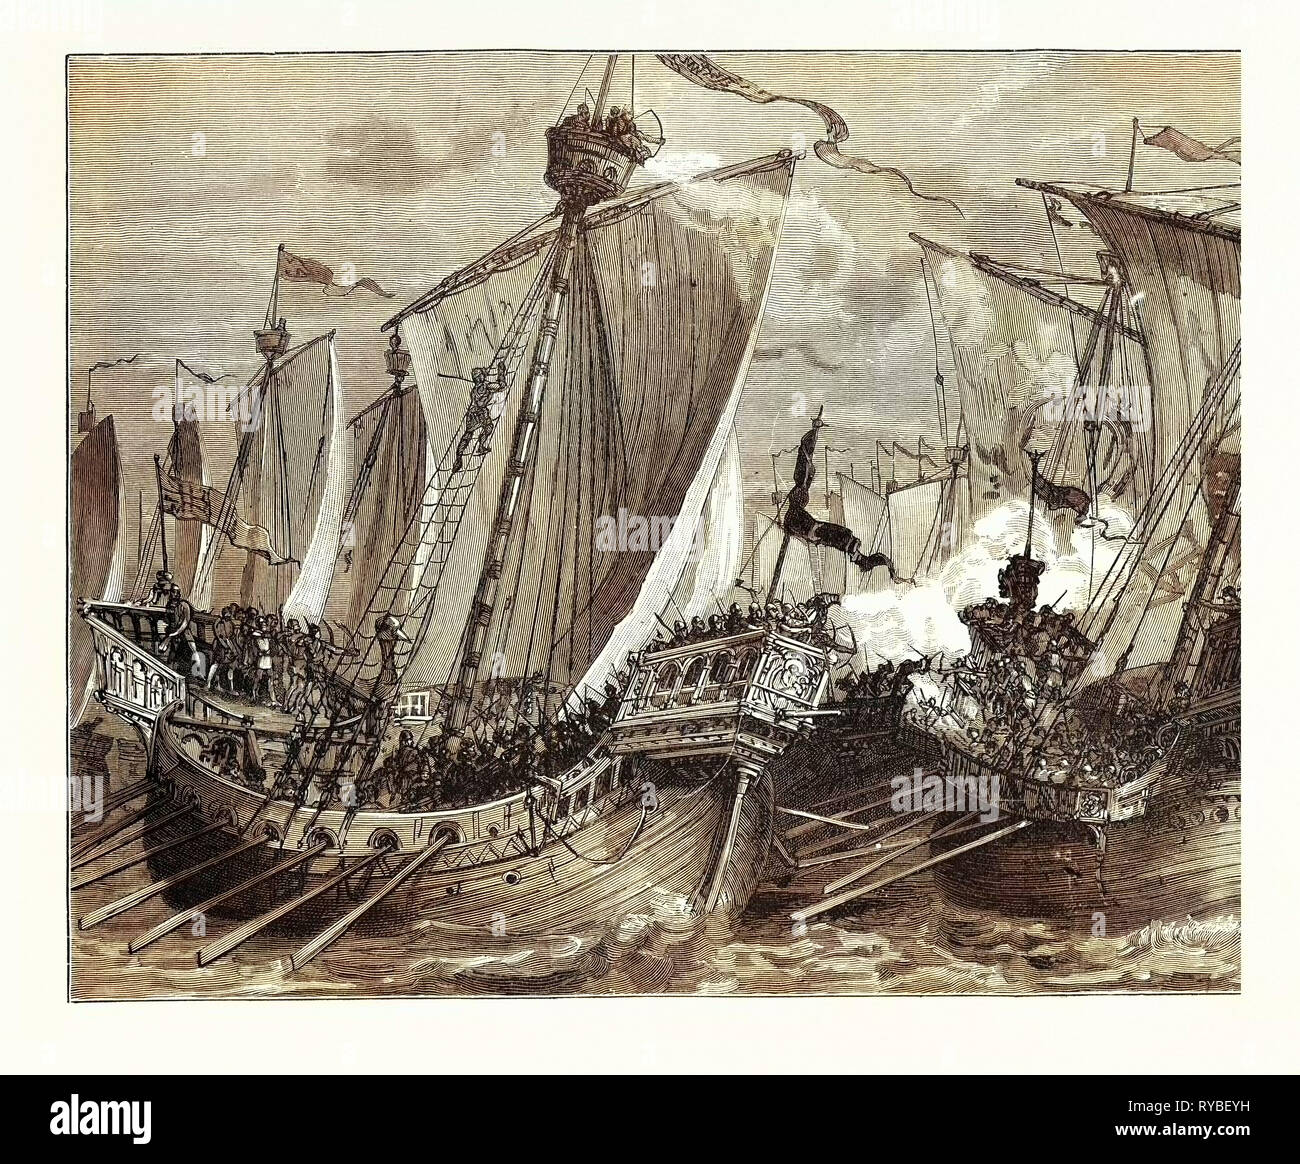 Defeat of the French Fleet in the English Channel - Stock Image